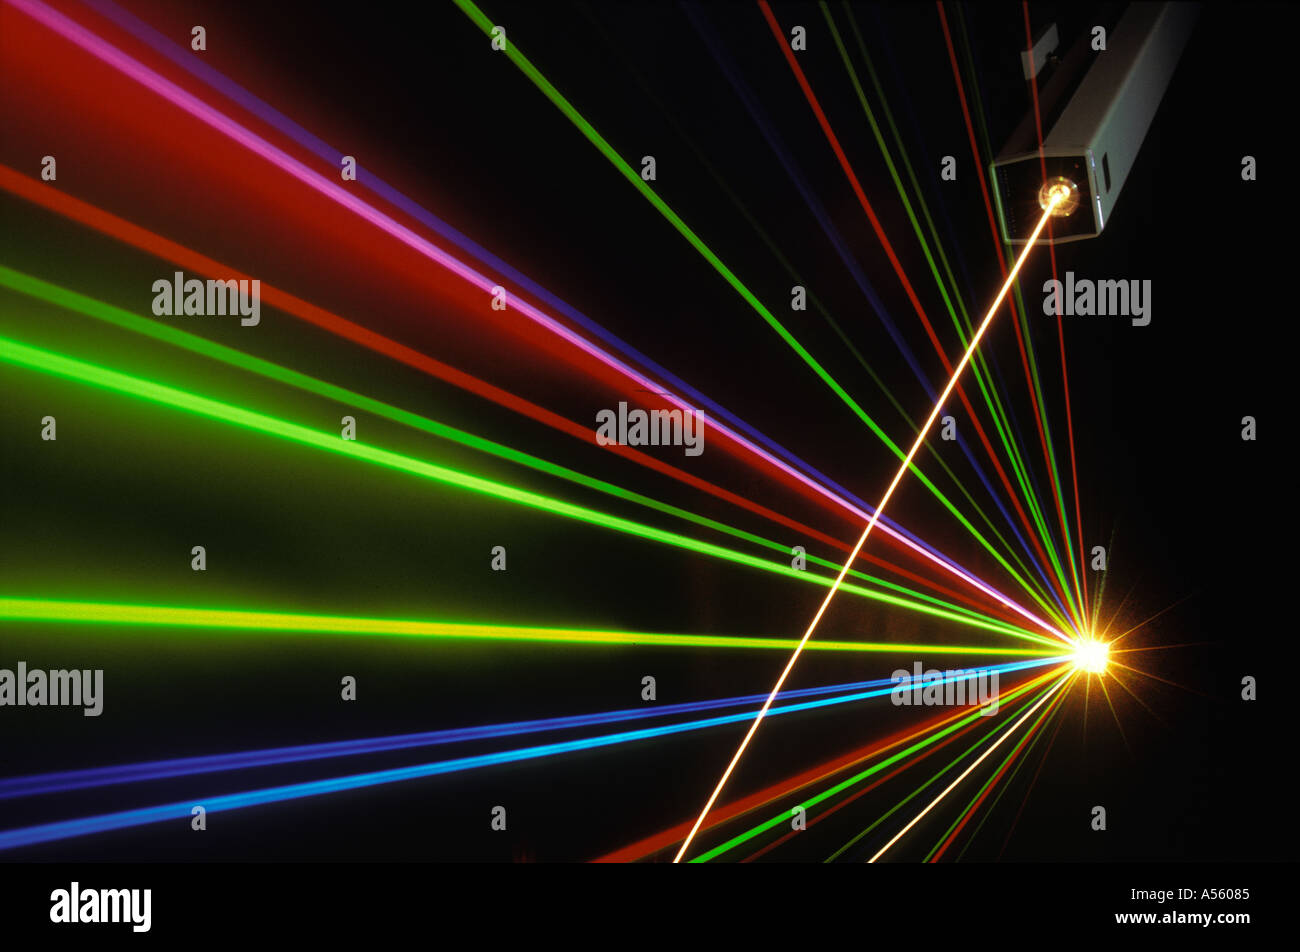 Laser Stock Photos & Laser Stock Images - Alamy